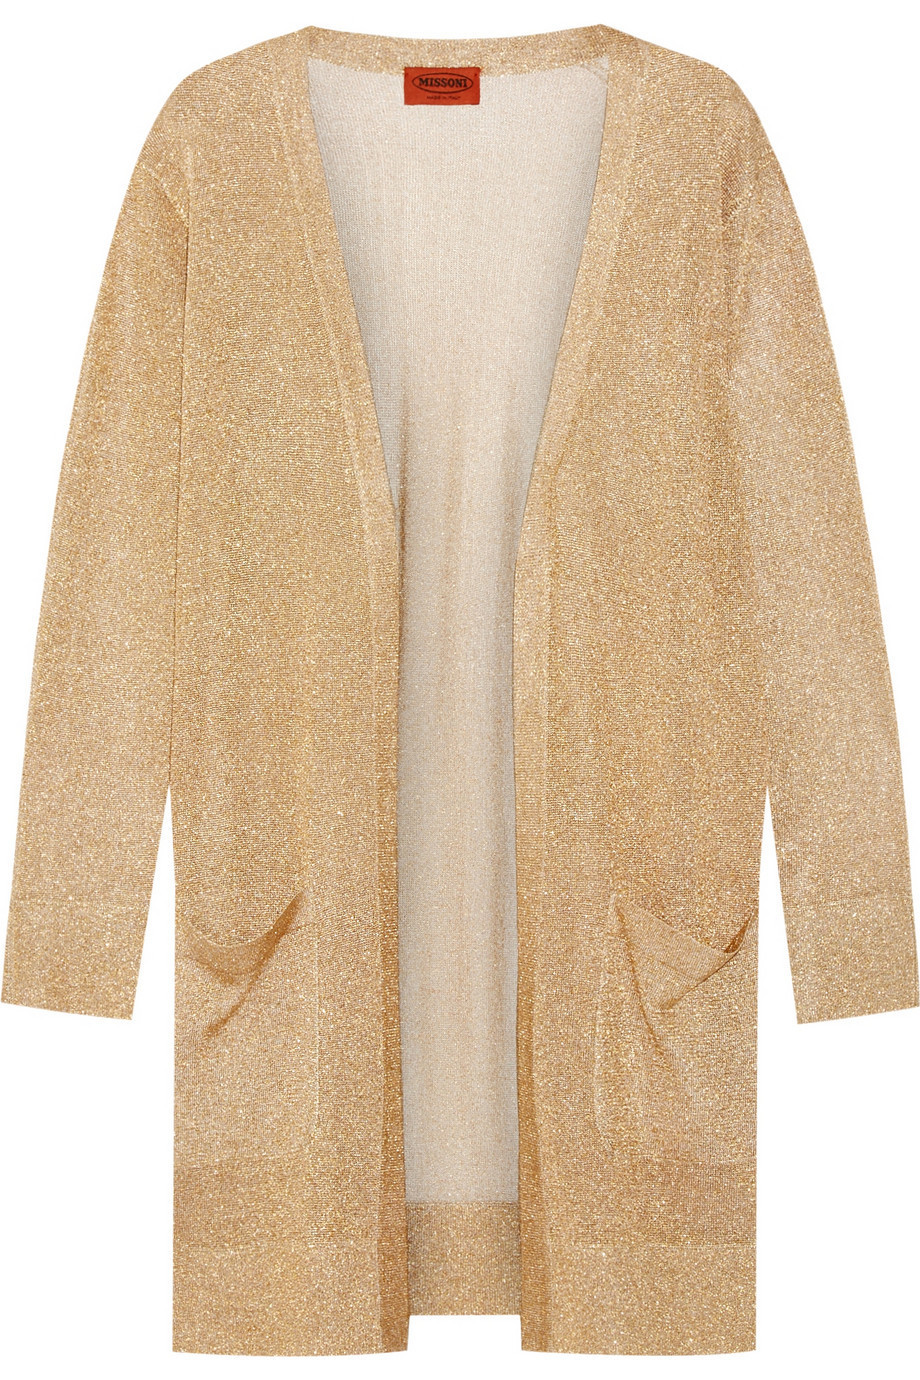 Missoni Metallic Crochet-Knit Cardigan - Wheretoget